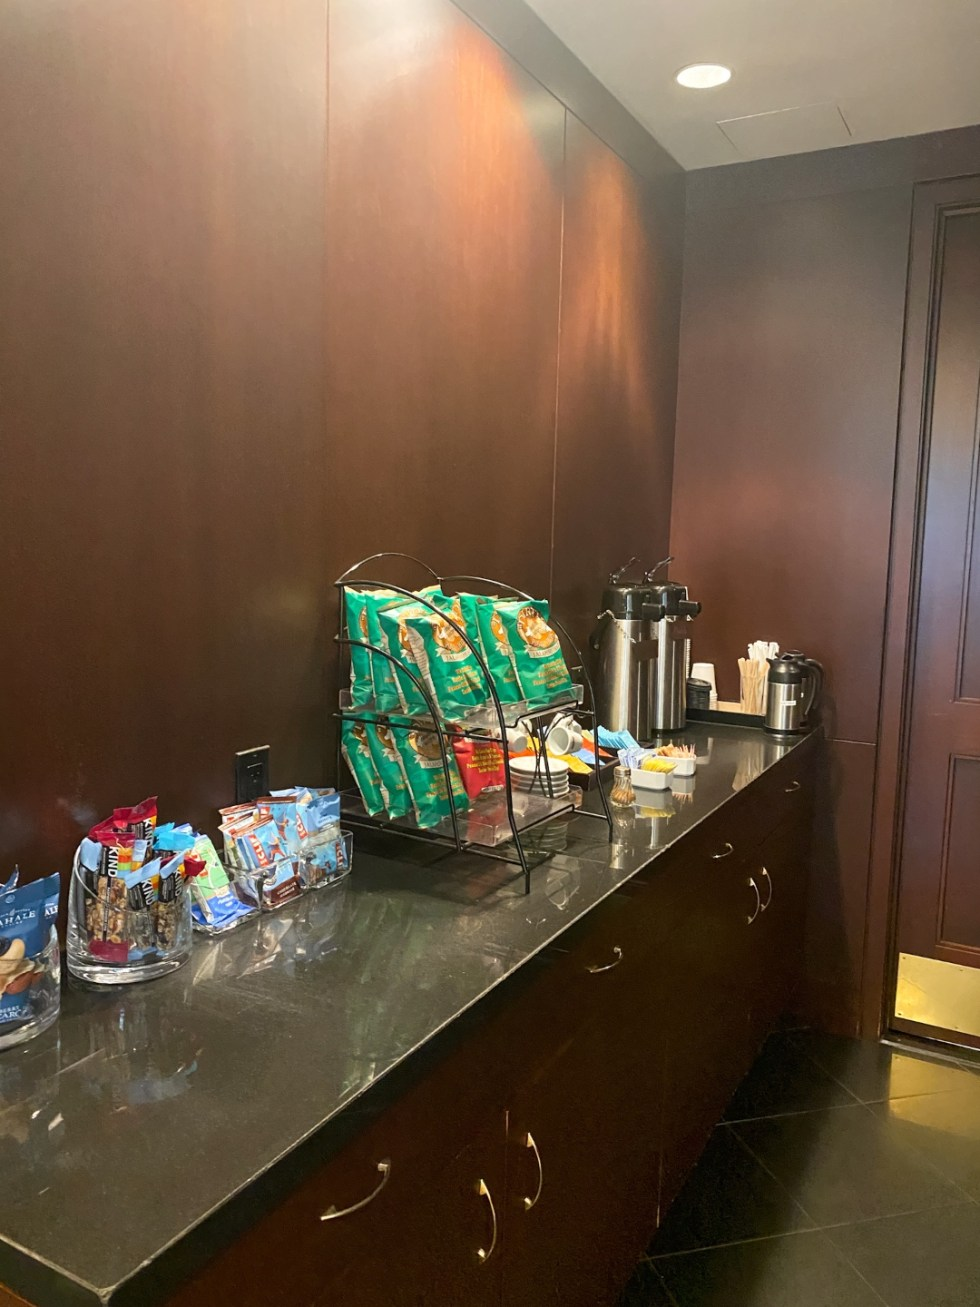 NYC Summer Weekend: Things to Do in NYC in the Summer - I'm Fixin' To - @imfixintoblog   NYC Summer Weekend by popular NC travel blog, I'm Fixin' To: image of a snack bar.